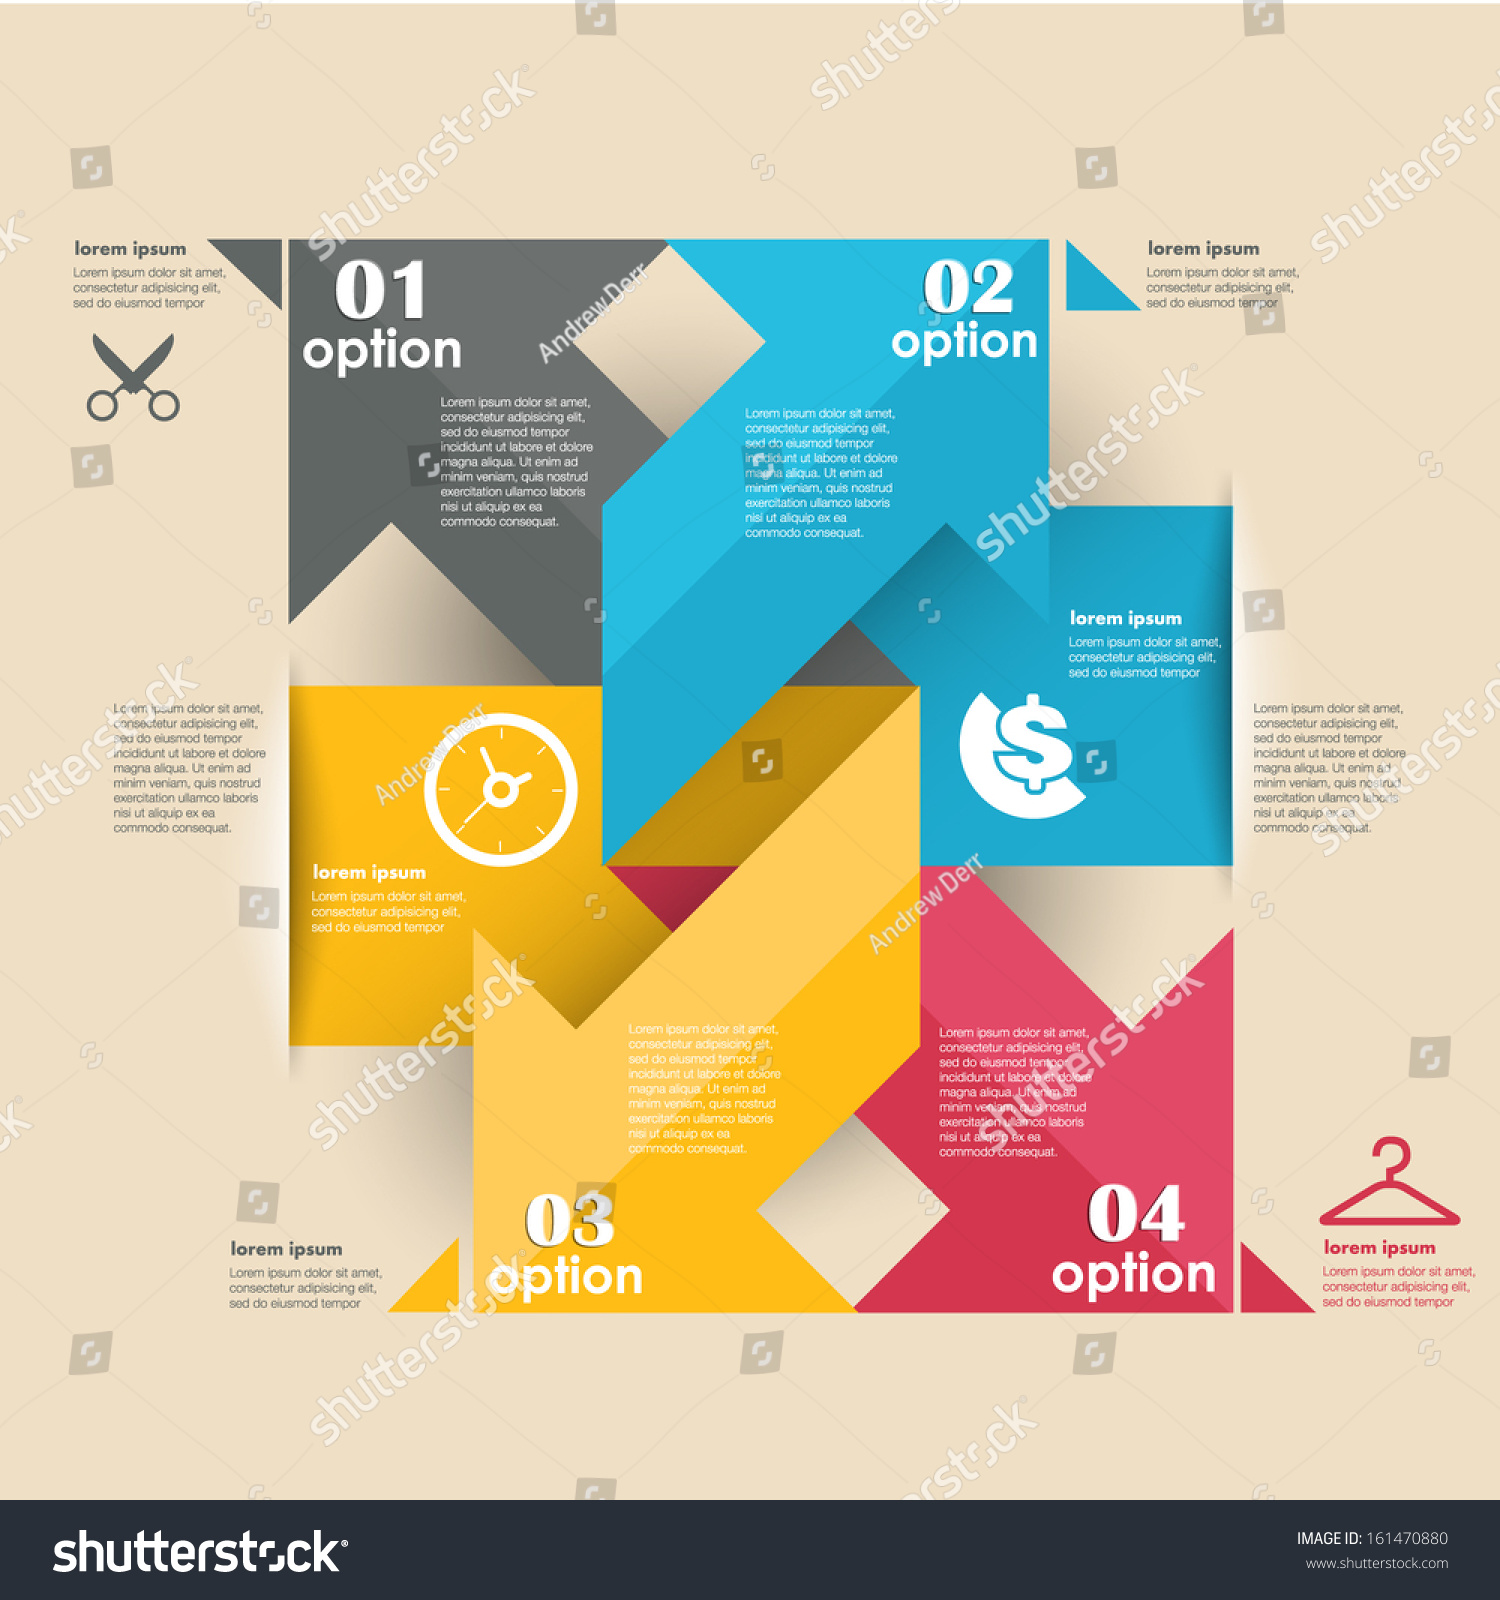 conceptual vector design template infographics element 161470880 shutterstock. Black Bedroom Furniture Sets. Home Design Ideas